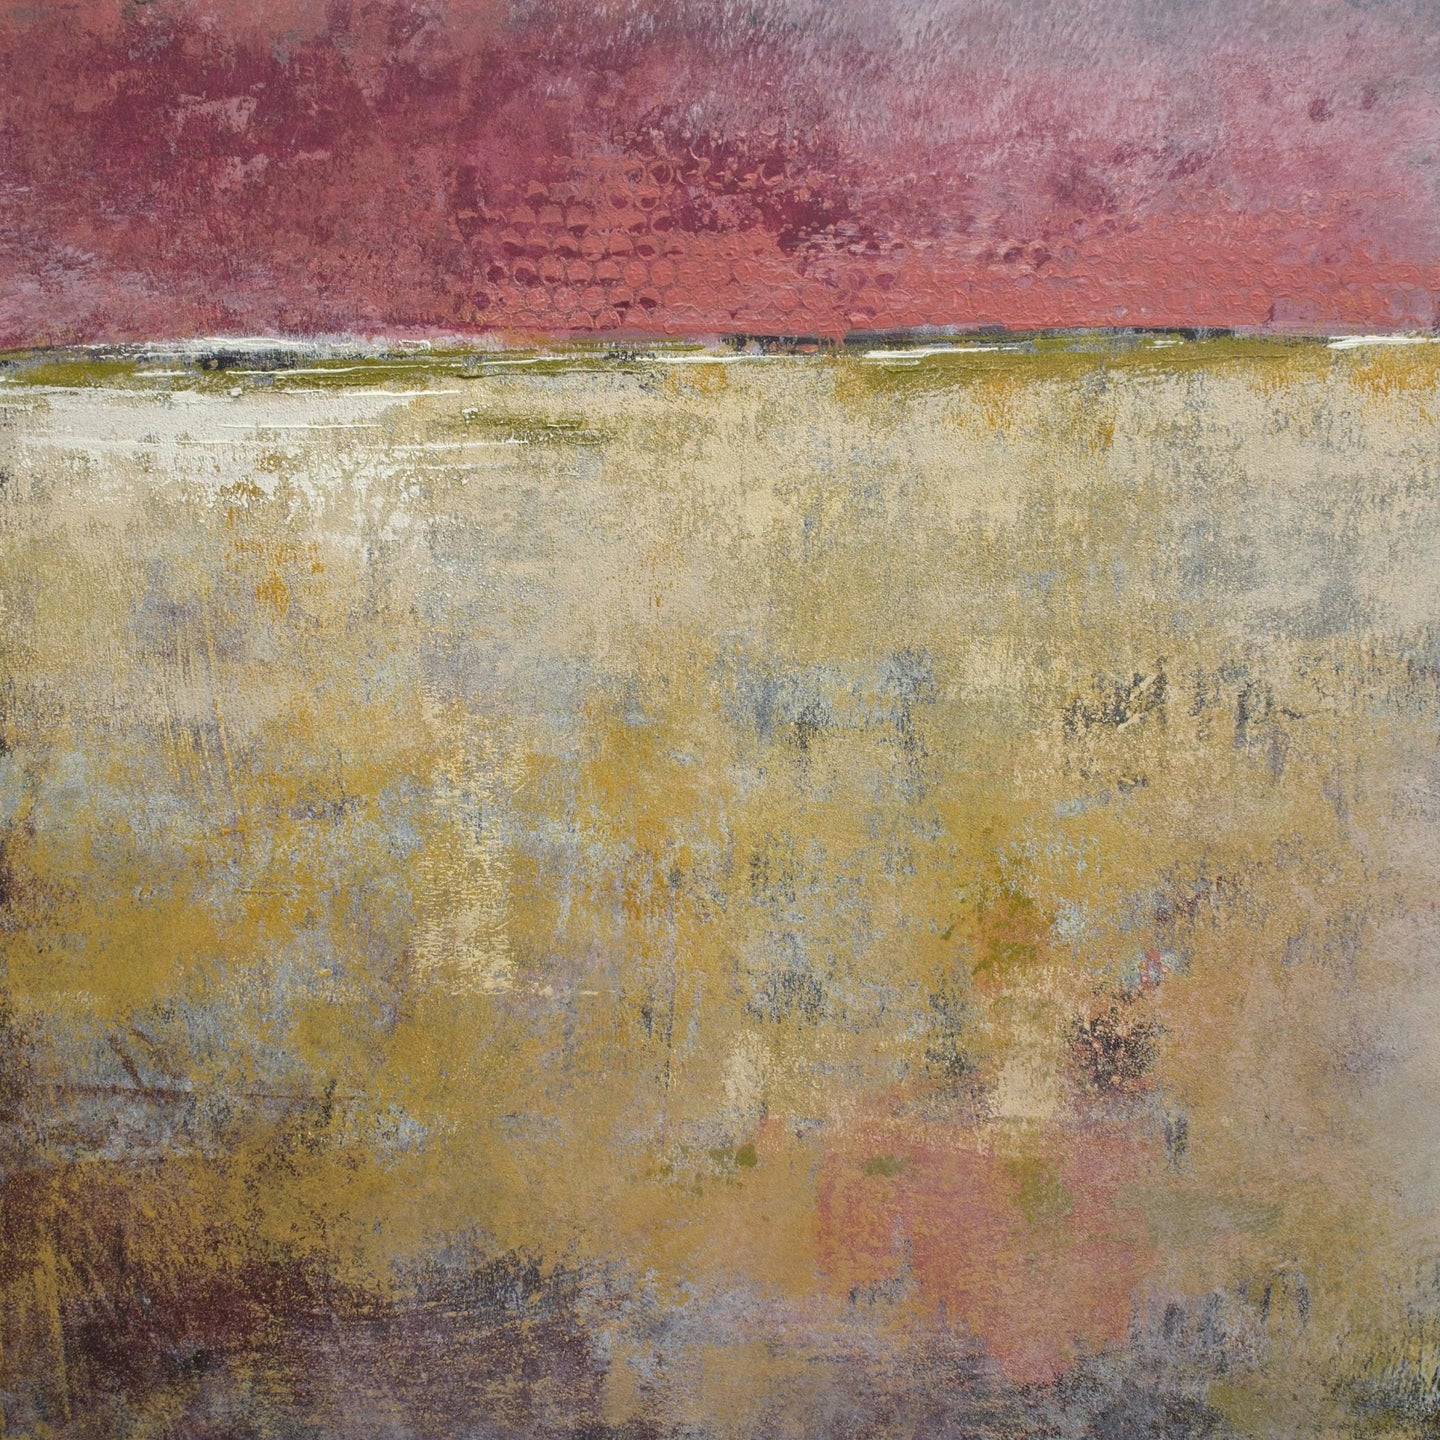 Red and gold abstract ocean painting